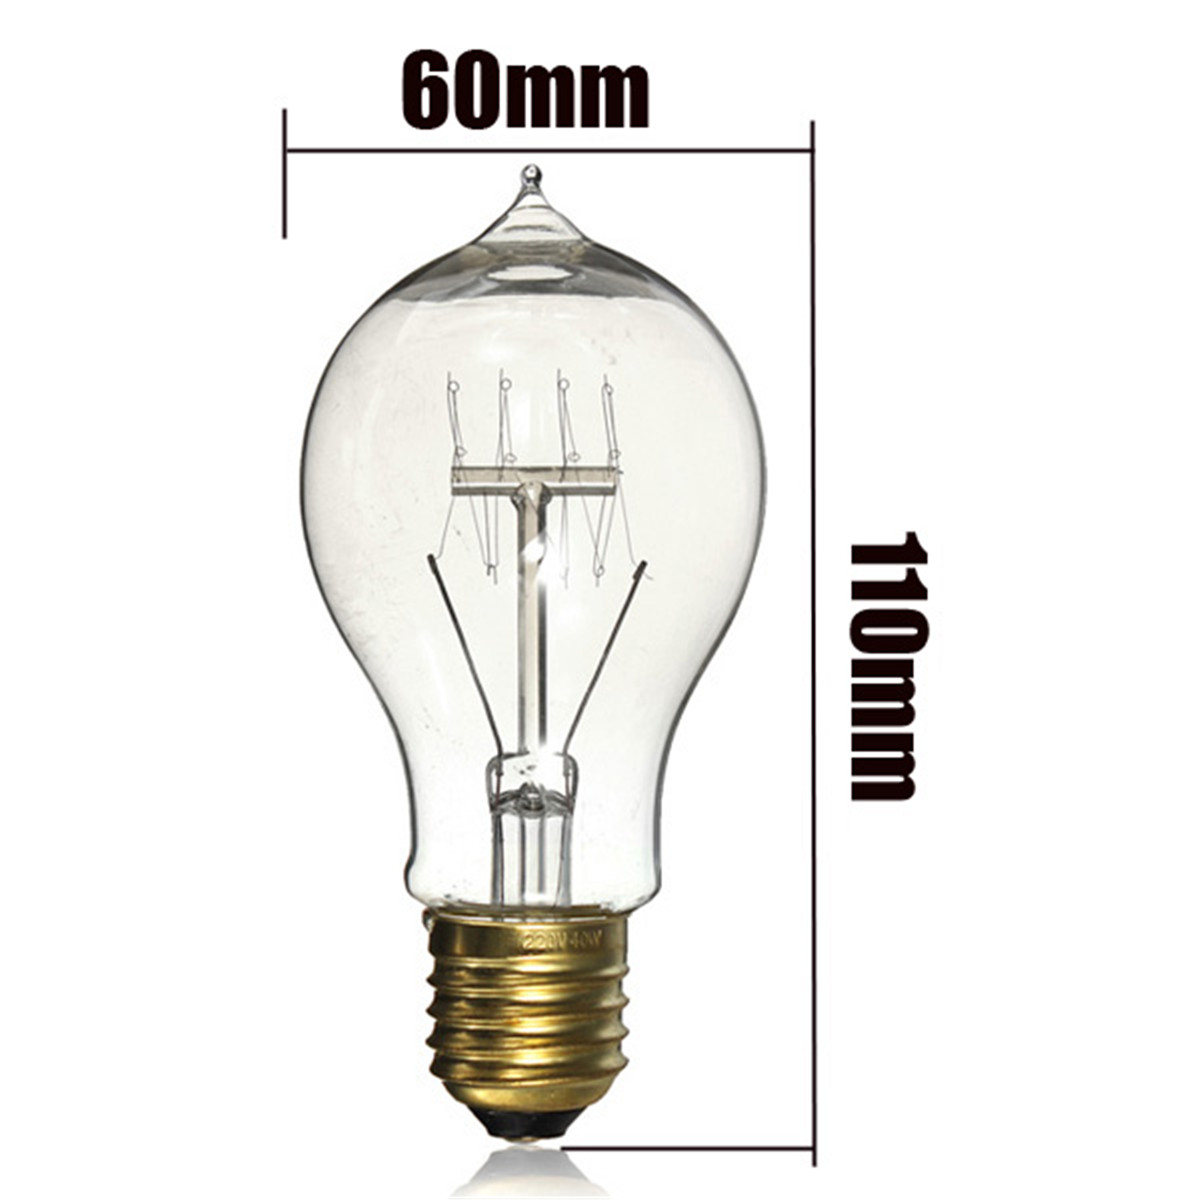 E27 E14 E27 E14 B22 Retro Edison Lamp Antique Industrial Filament